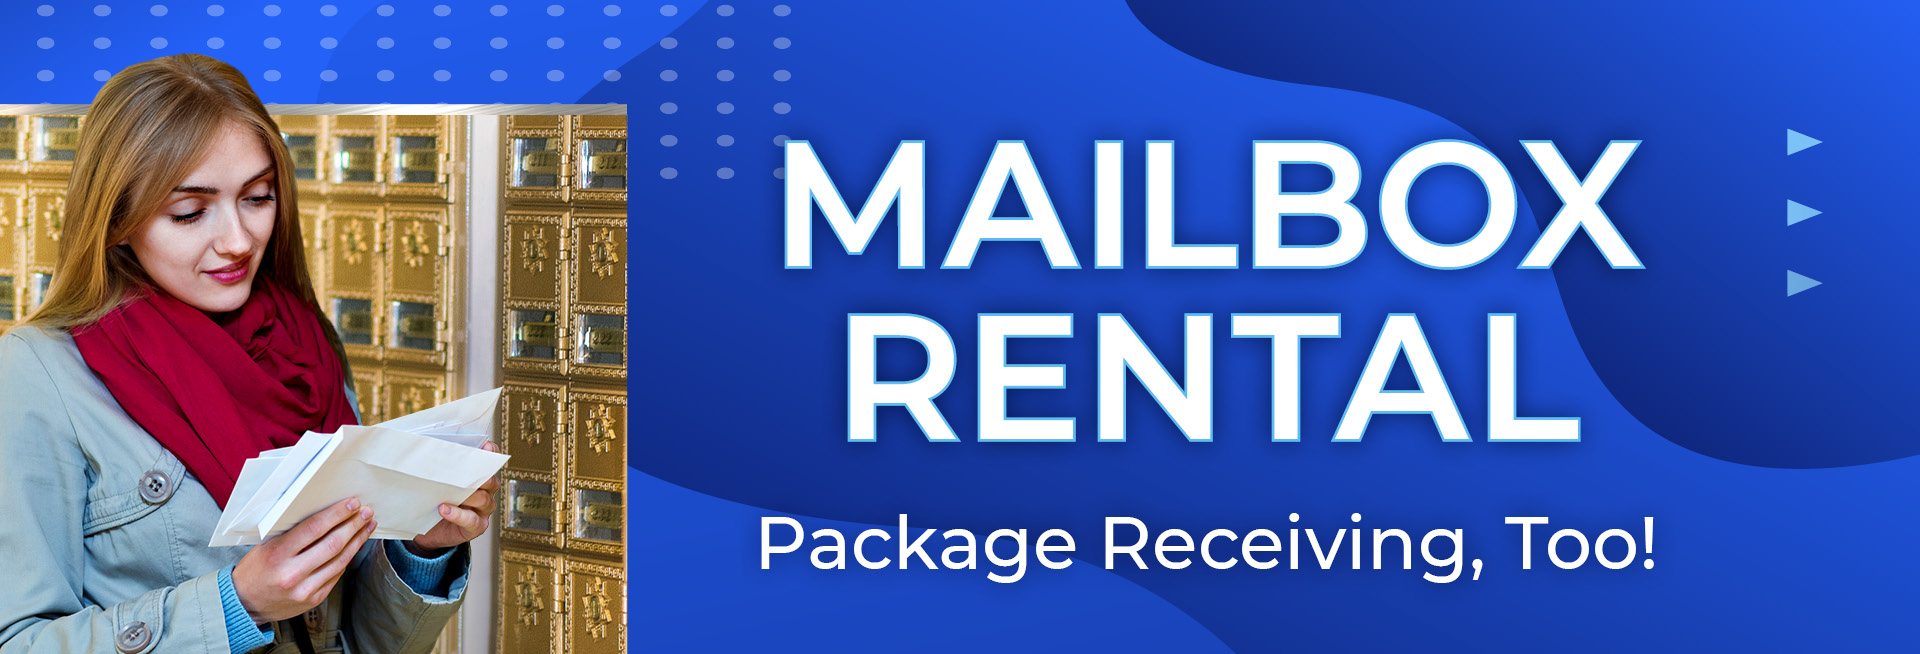 Mailbox Rental - Package Receiving, Too!